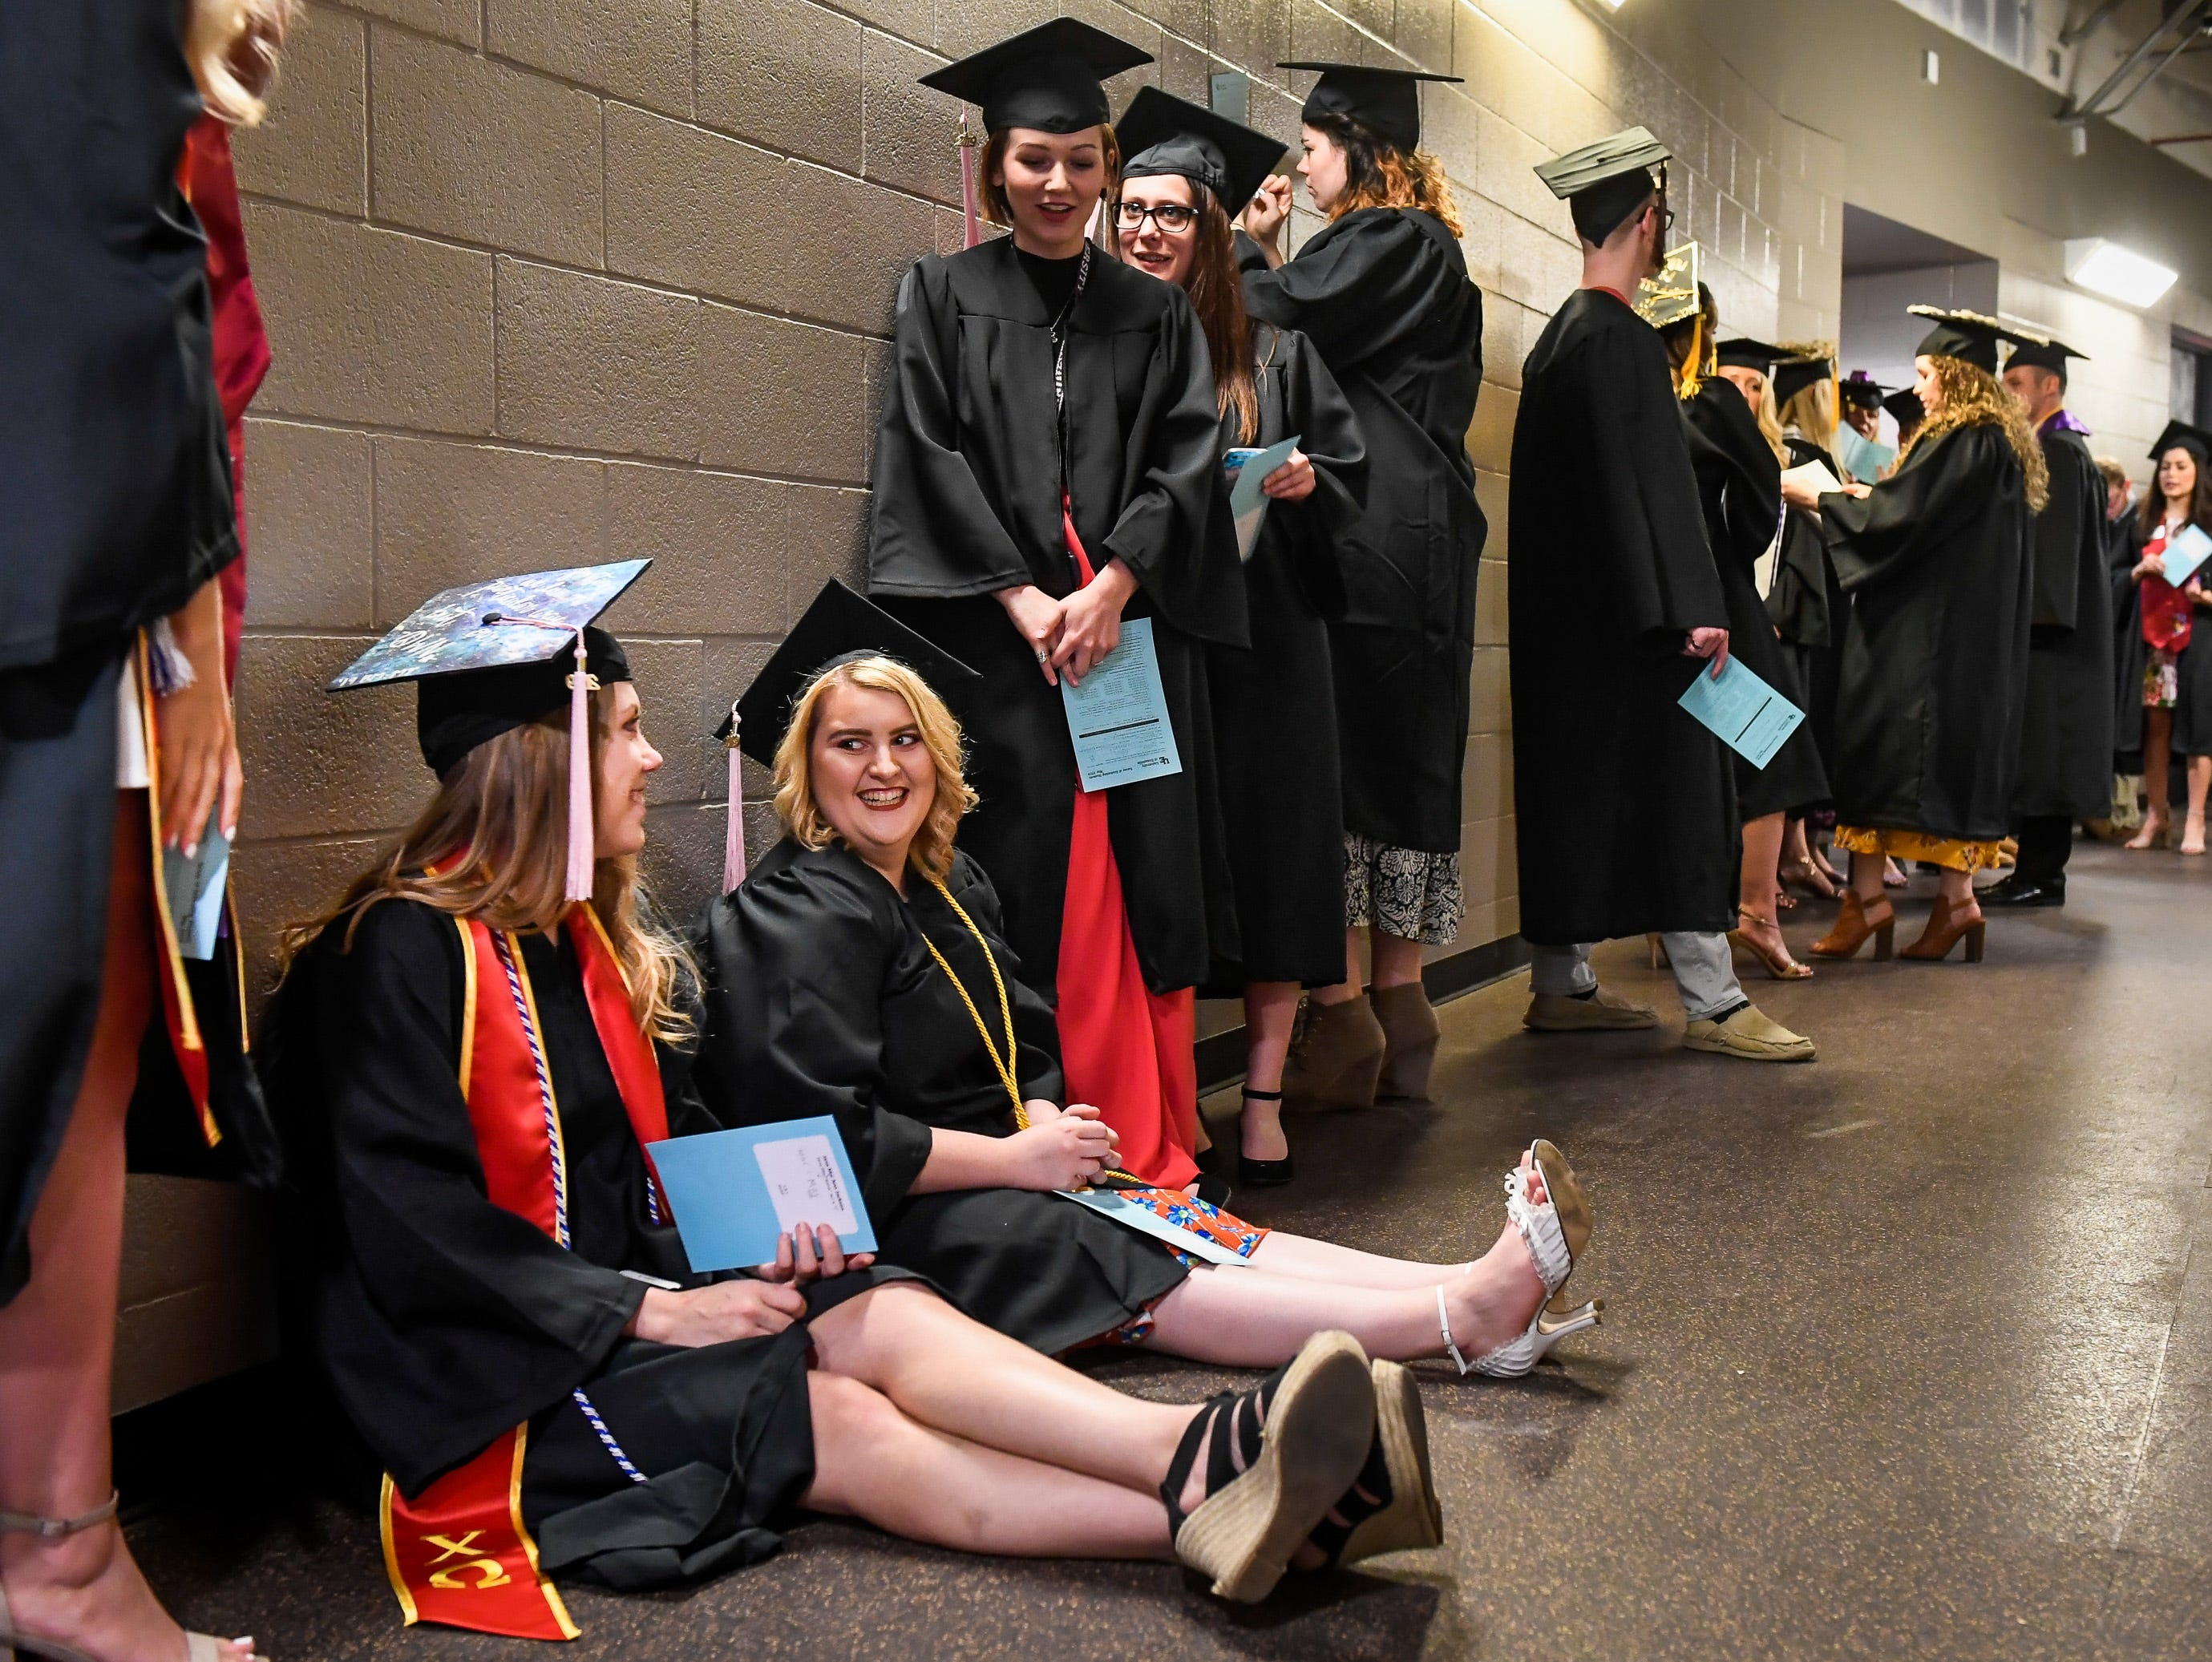 Soon to be graduates, Jana Jackson, left, and April Kuhnert rest on the floor as they cue up in the arena tunnel for the University of Evansville's 161st commencement ceremony held at the Ford Center Saturday, May 11, 2019.